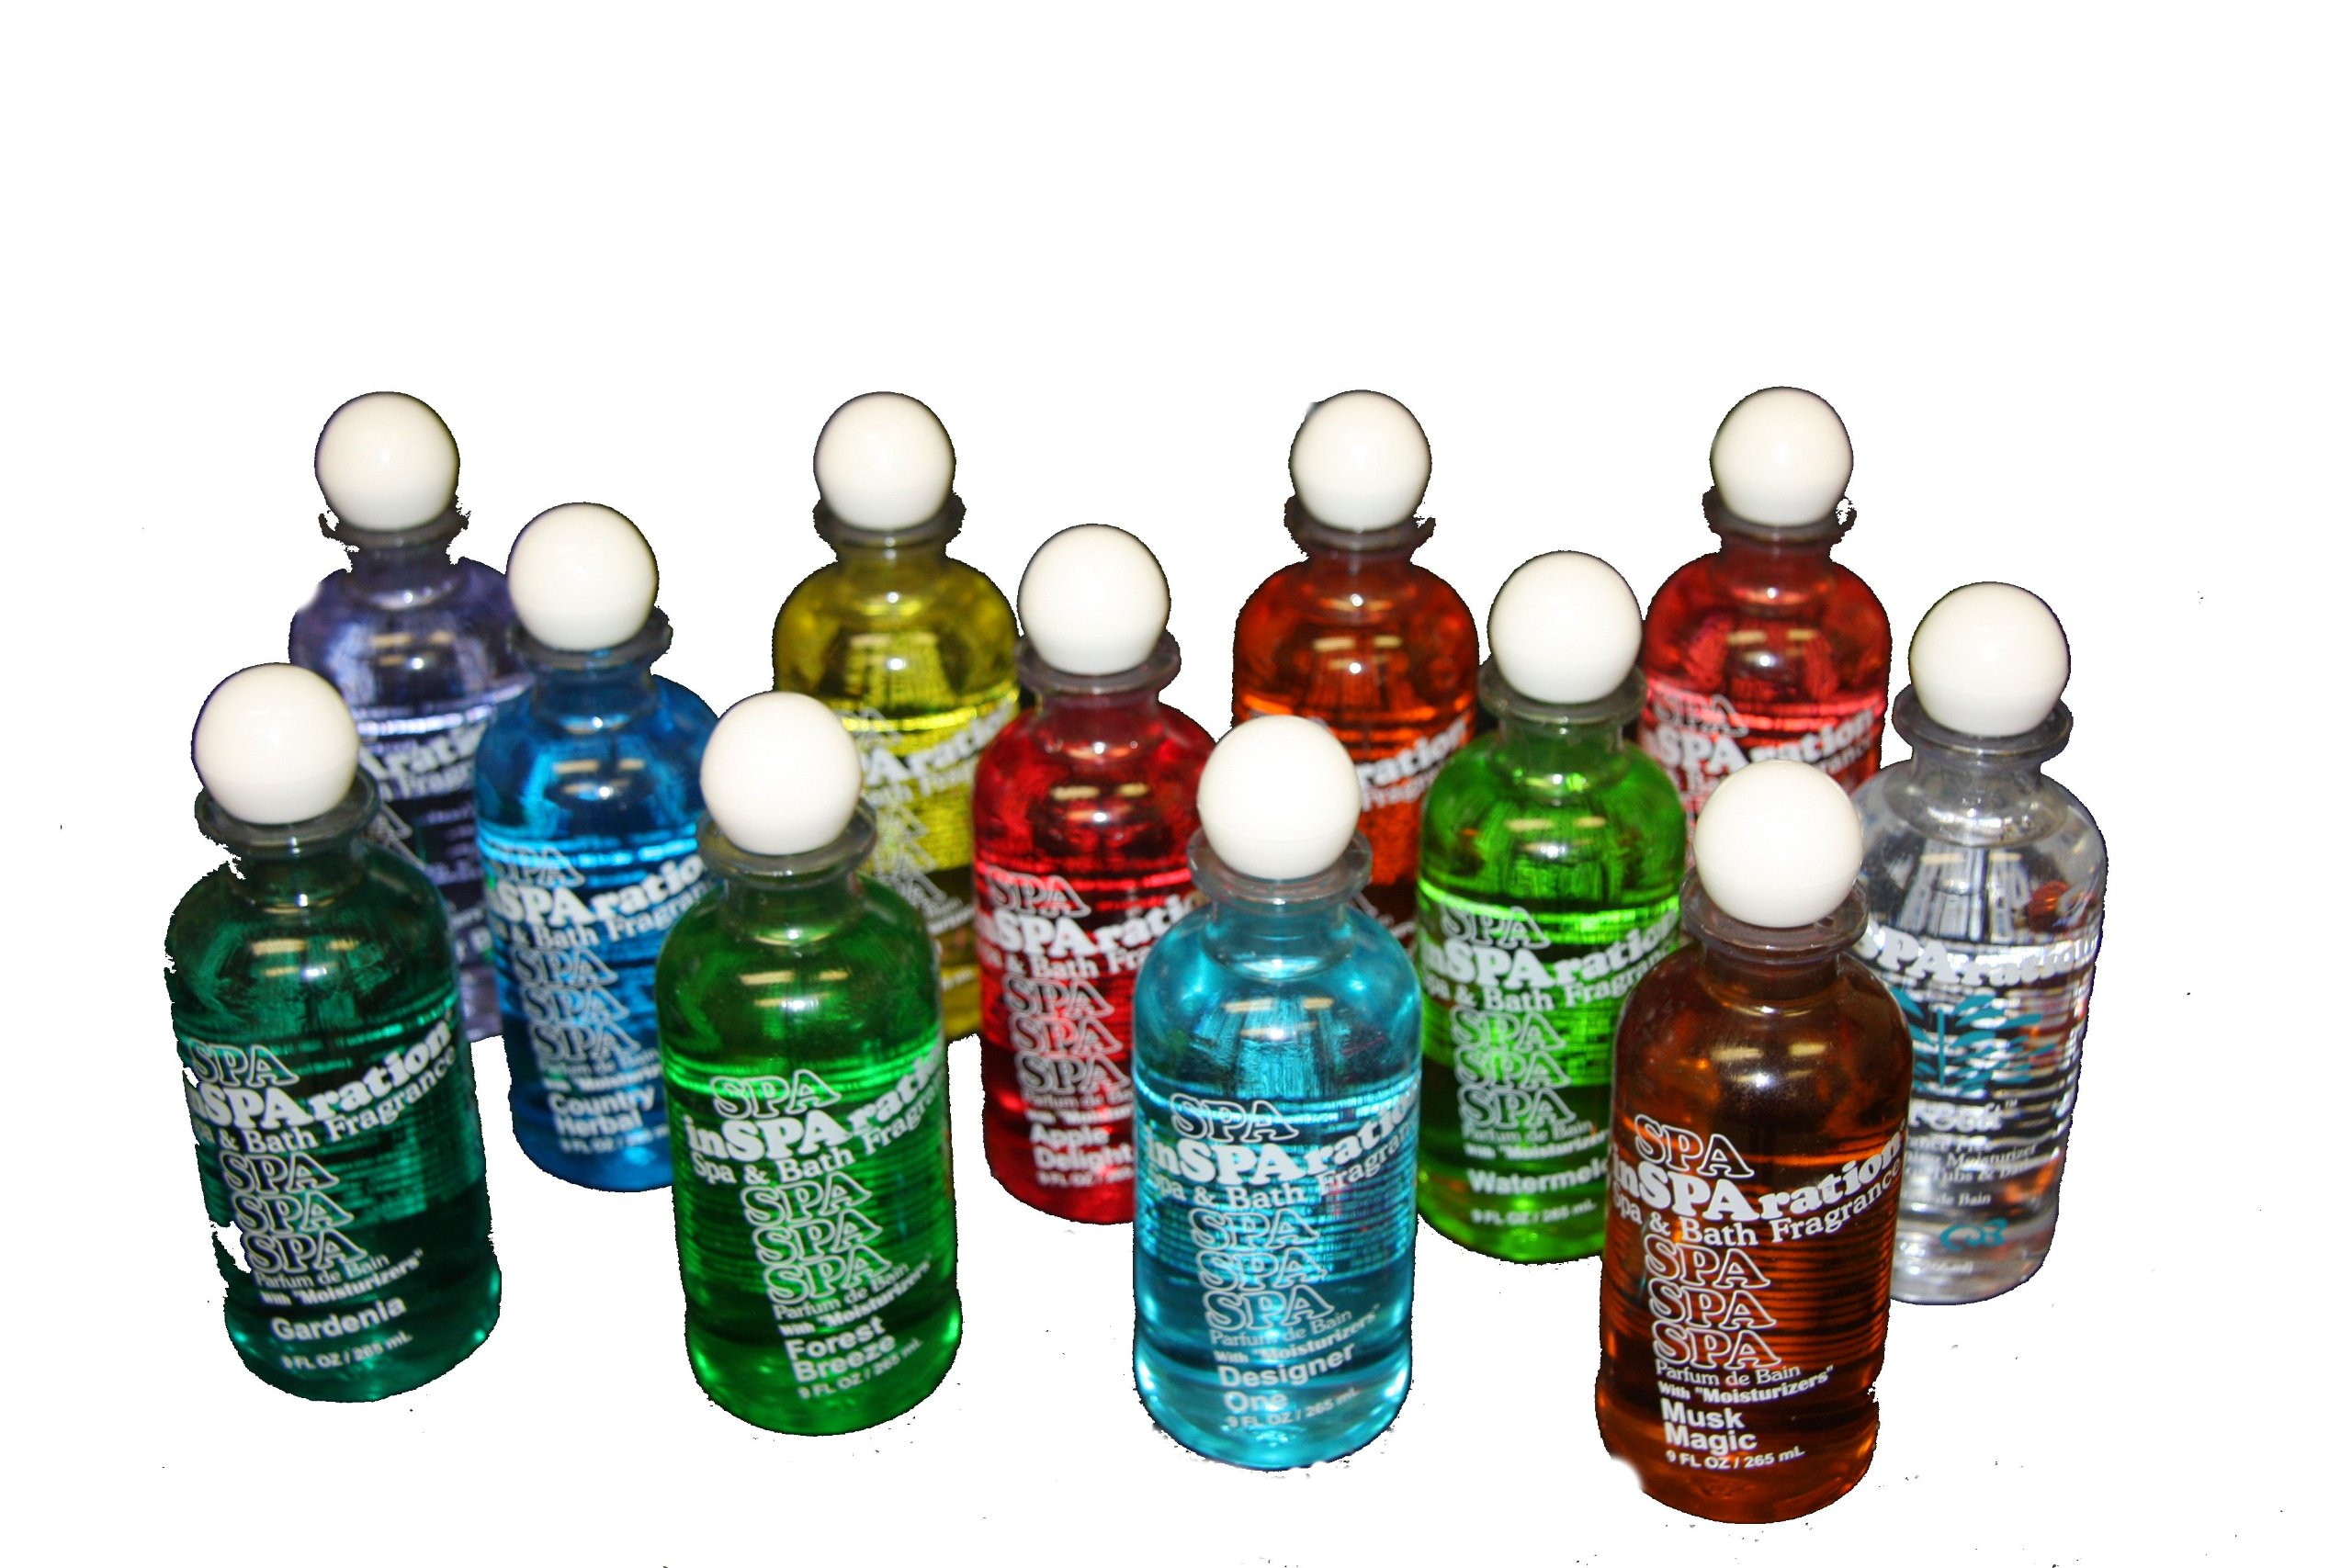 12 pack insparation liquids 9oz assortment C all 12 new spring scents